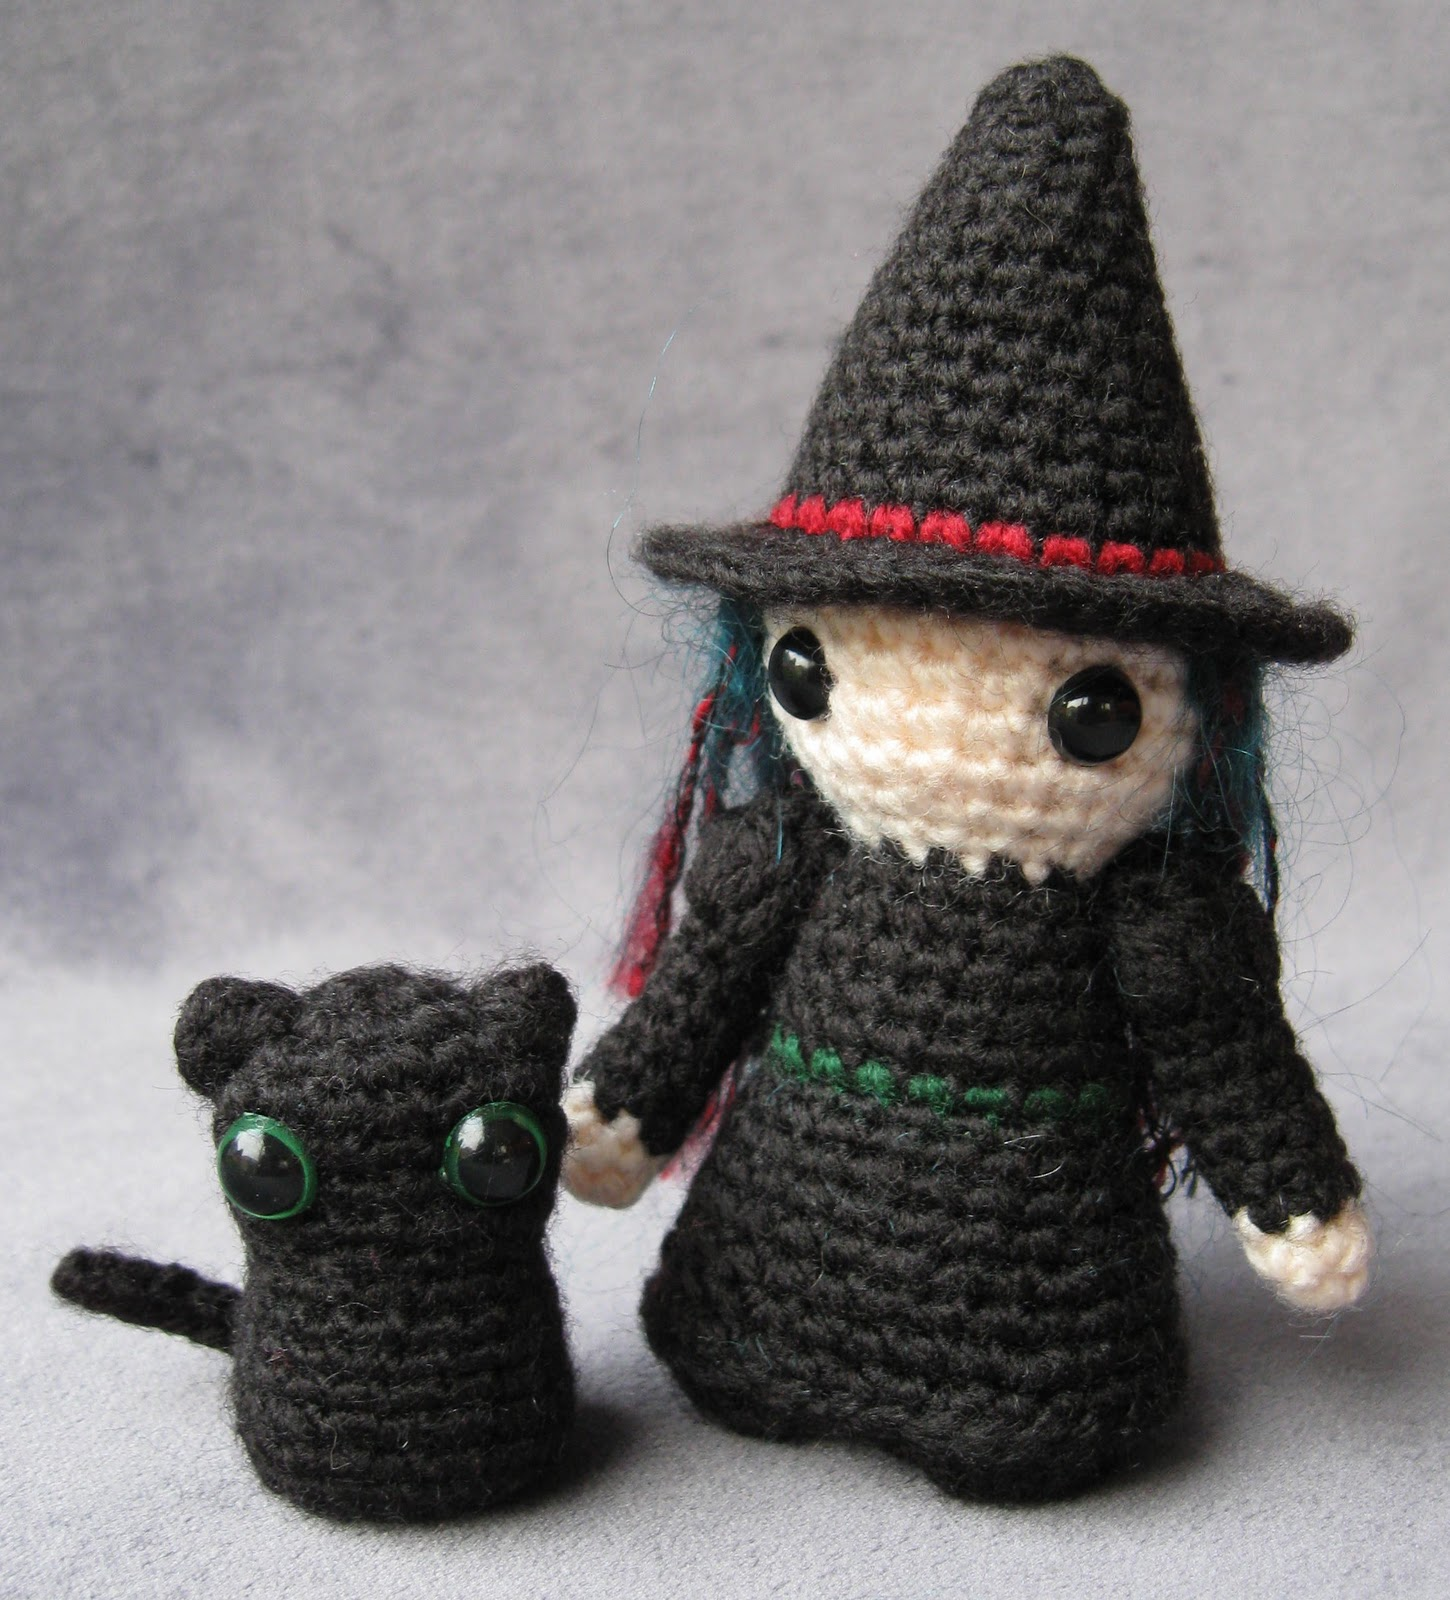 Free Crochet Patterns Halloween : LucyRavenscar - Crochet Creatures: Halloween Patterns